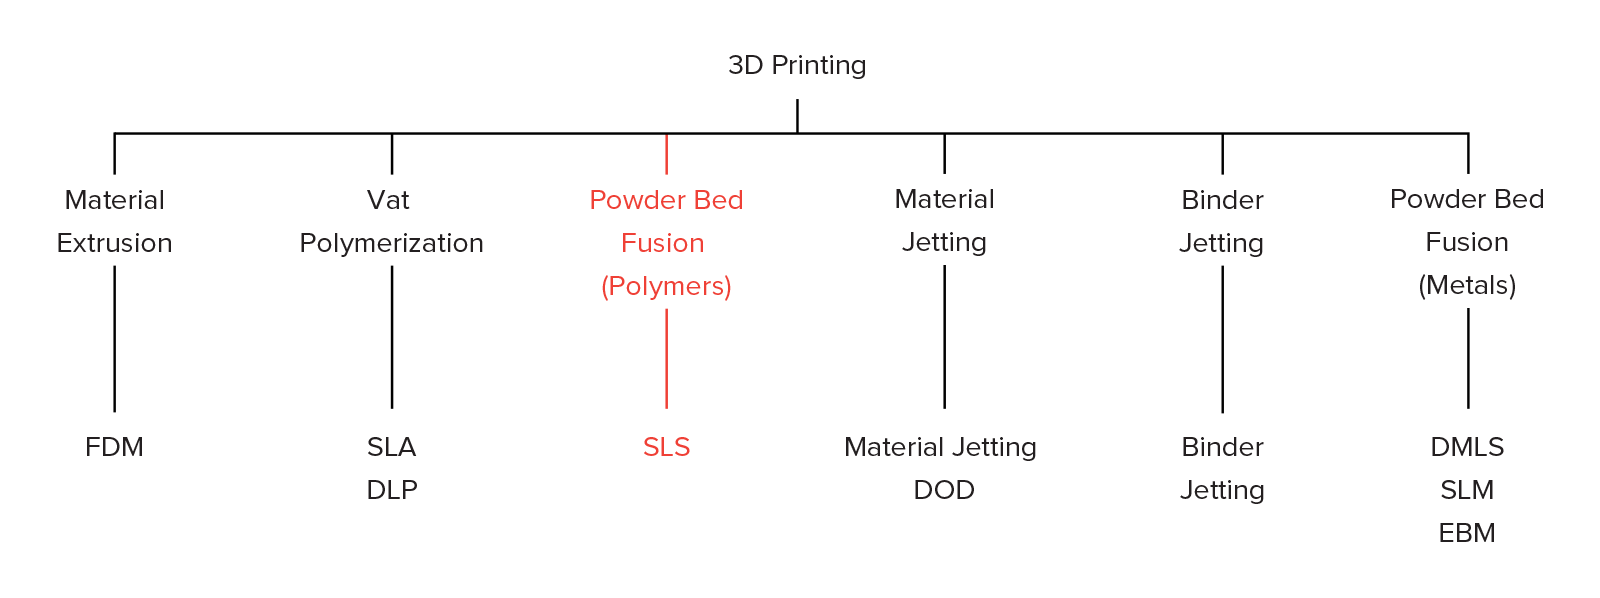 These Are 3D Printing Technologies That Is on The Table and What You Can Expect from Them